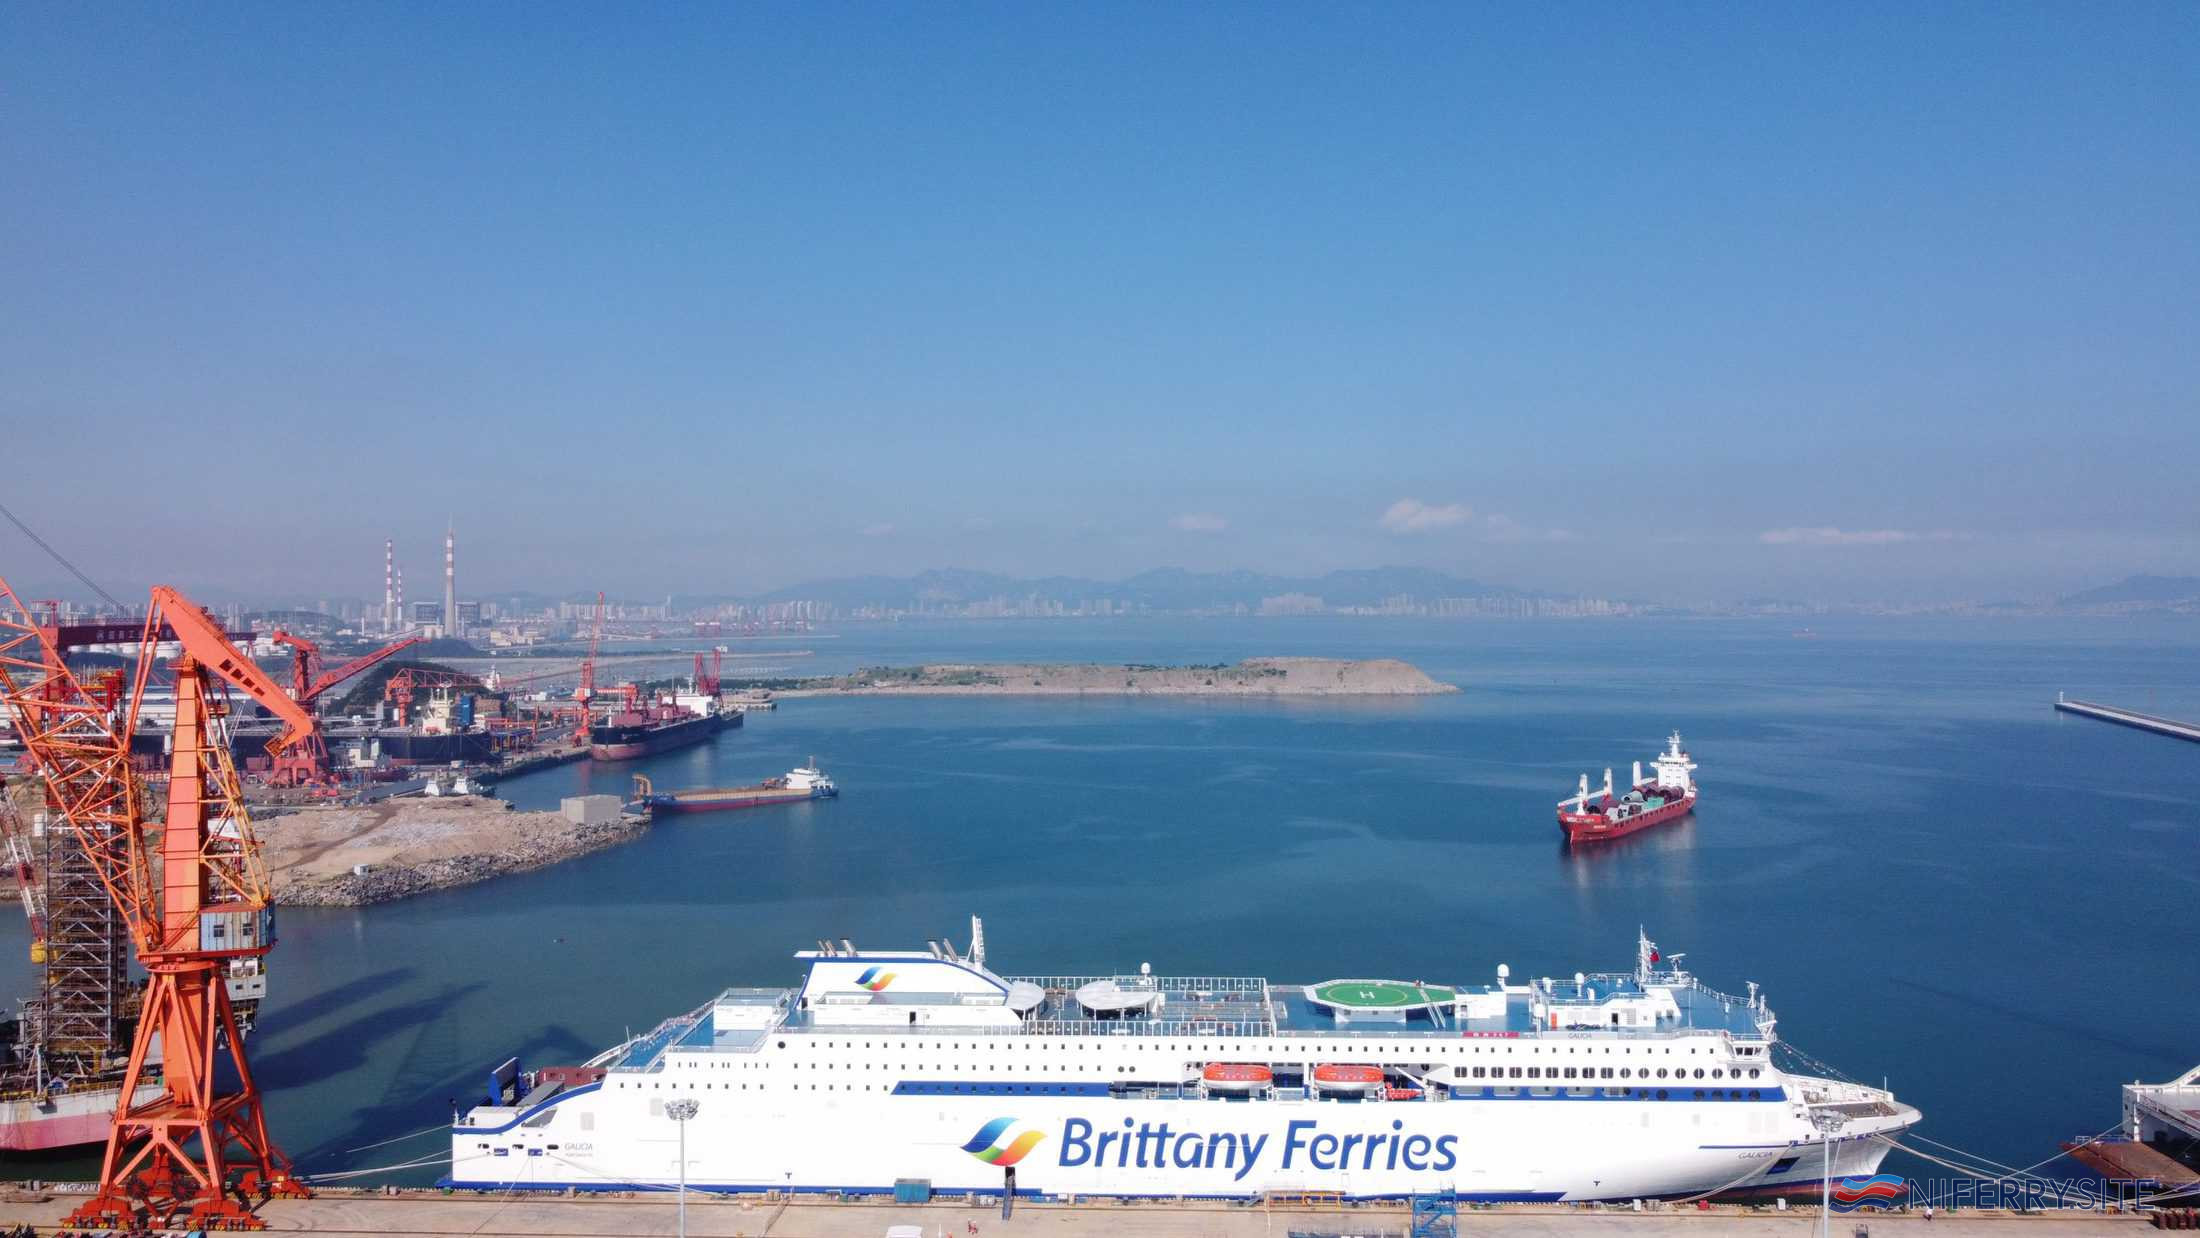 Brittany Ferries' GALICIA alongside at the outfitting pier nearing completion. Brittany Ferries.